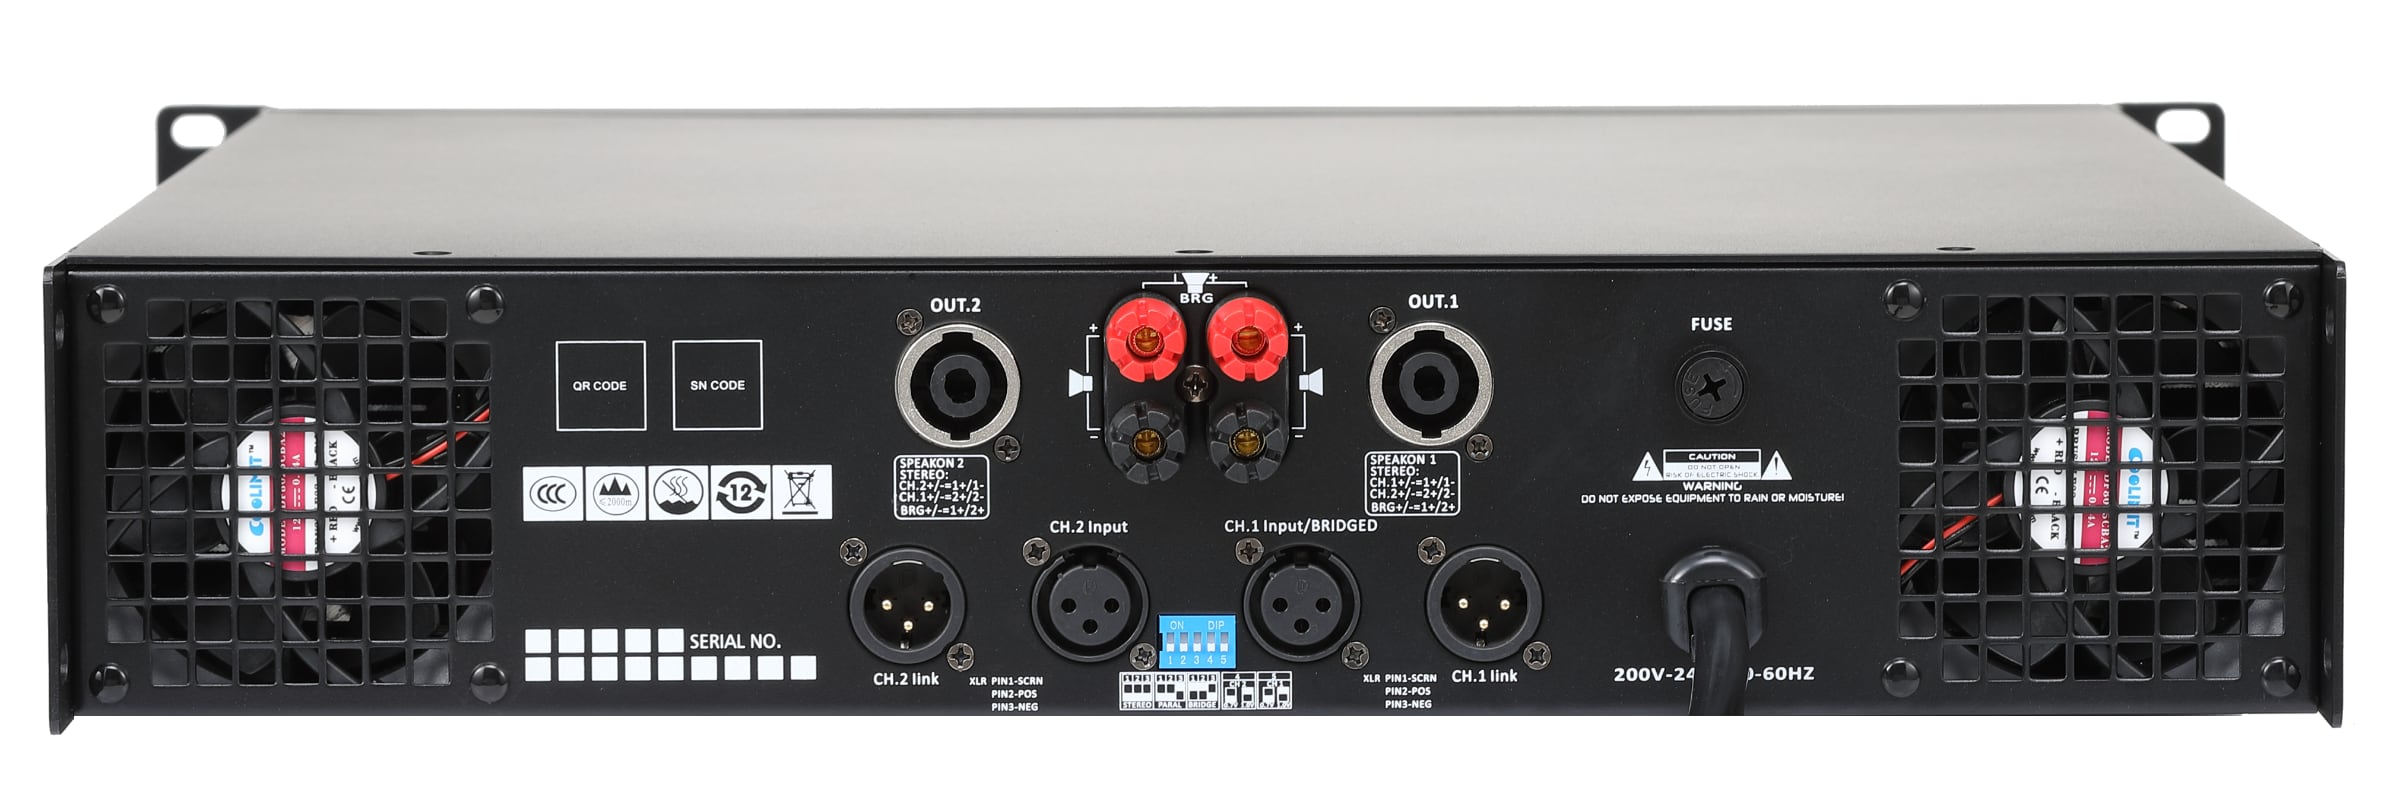 Công suất AAP DX-6002